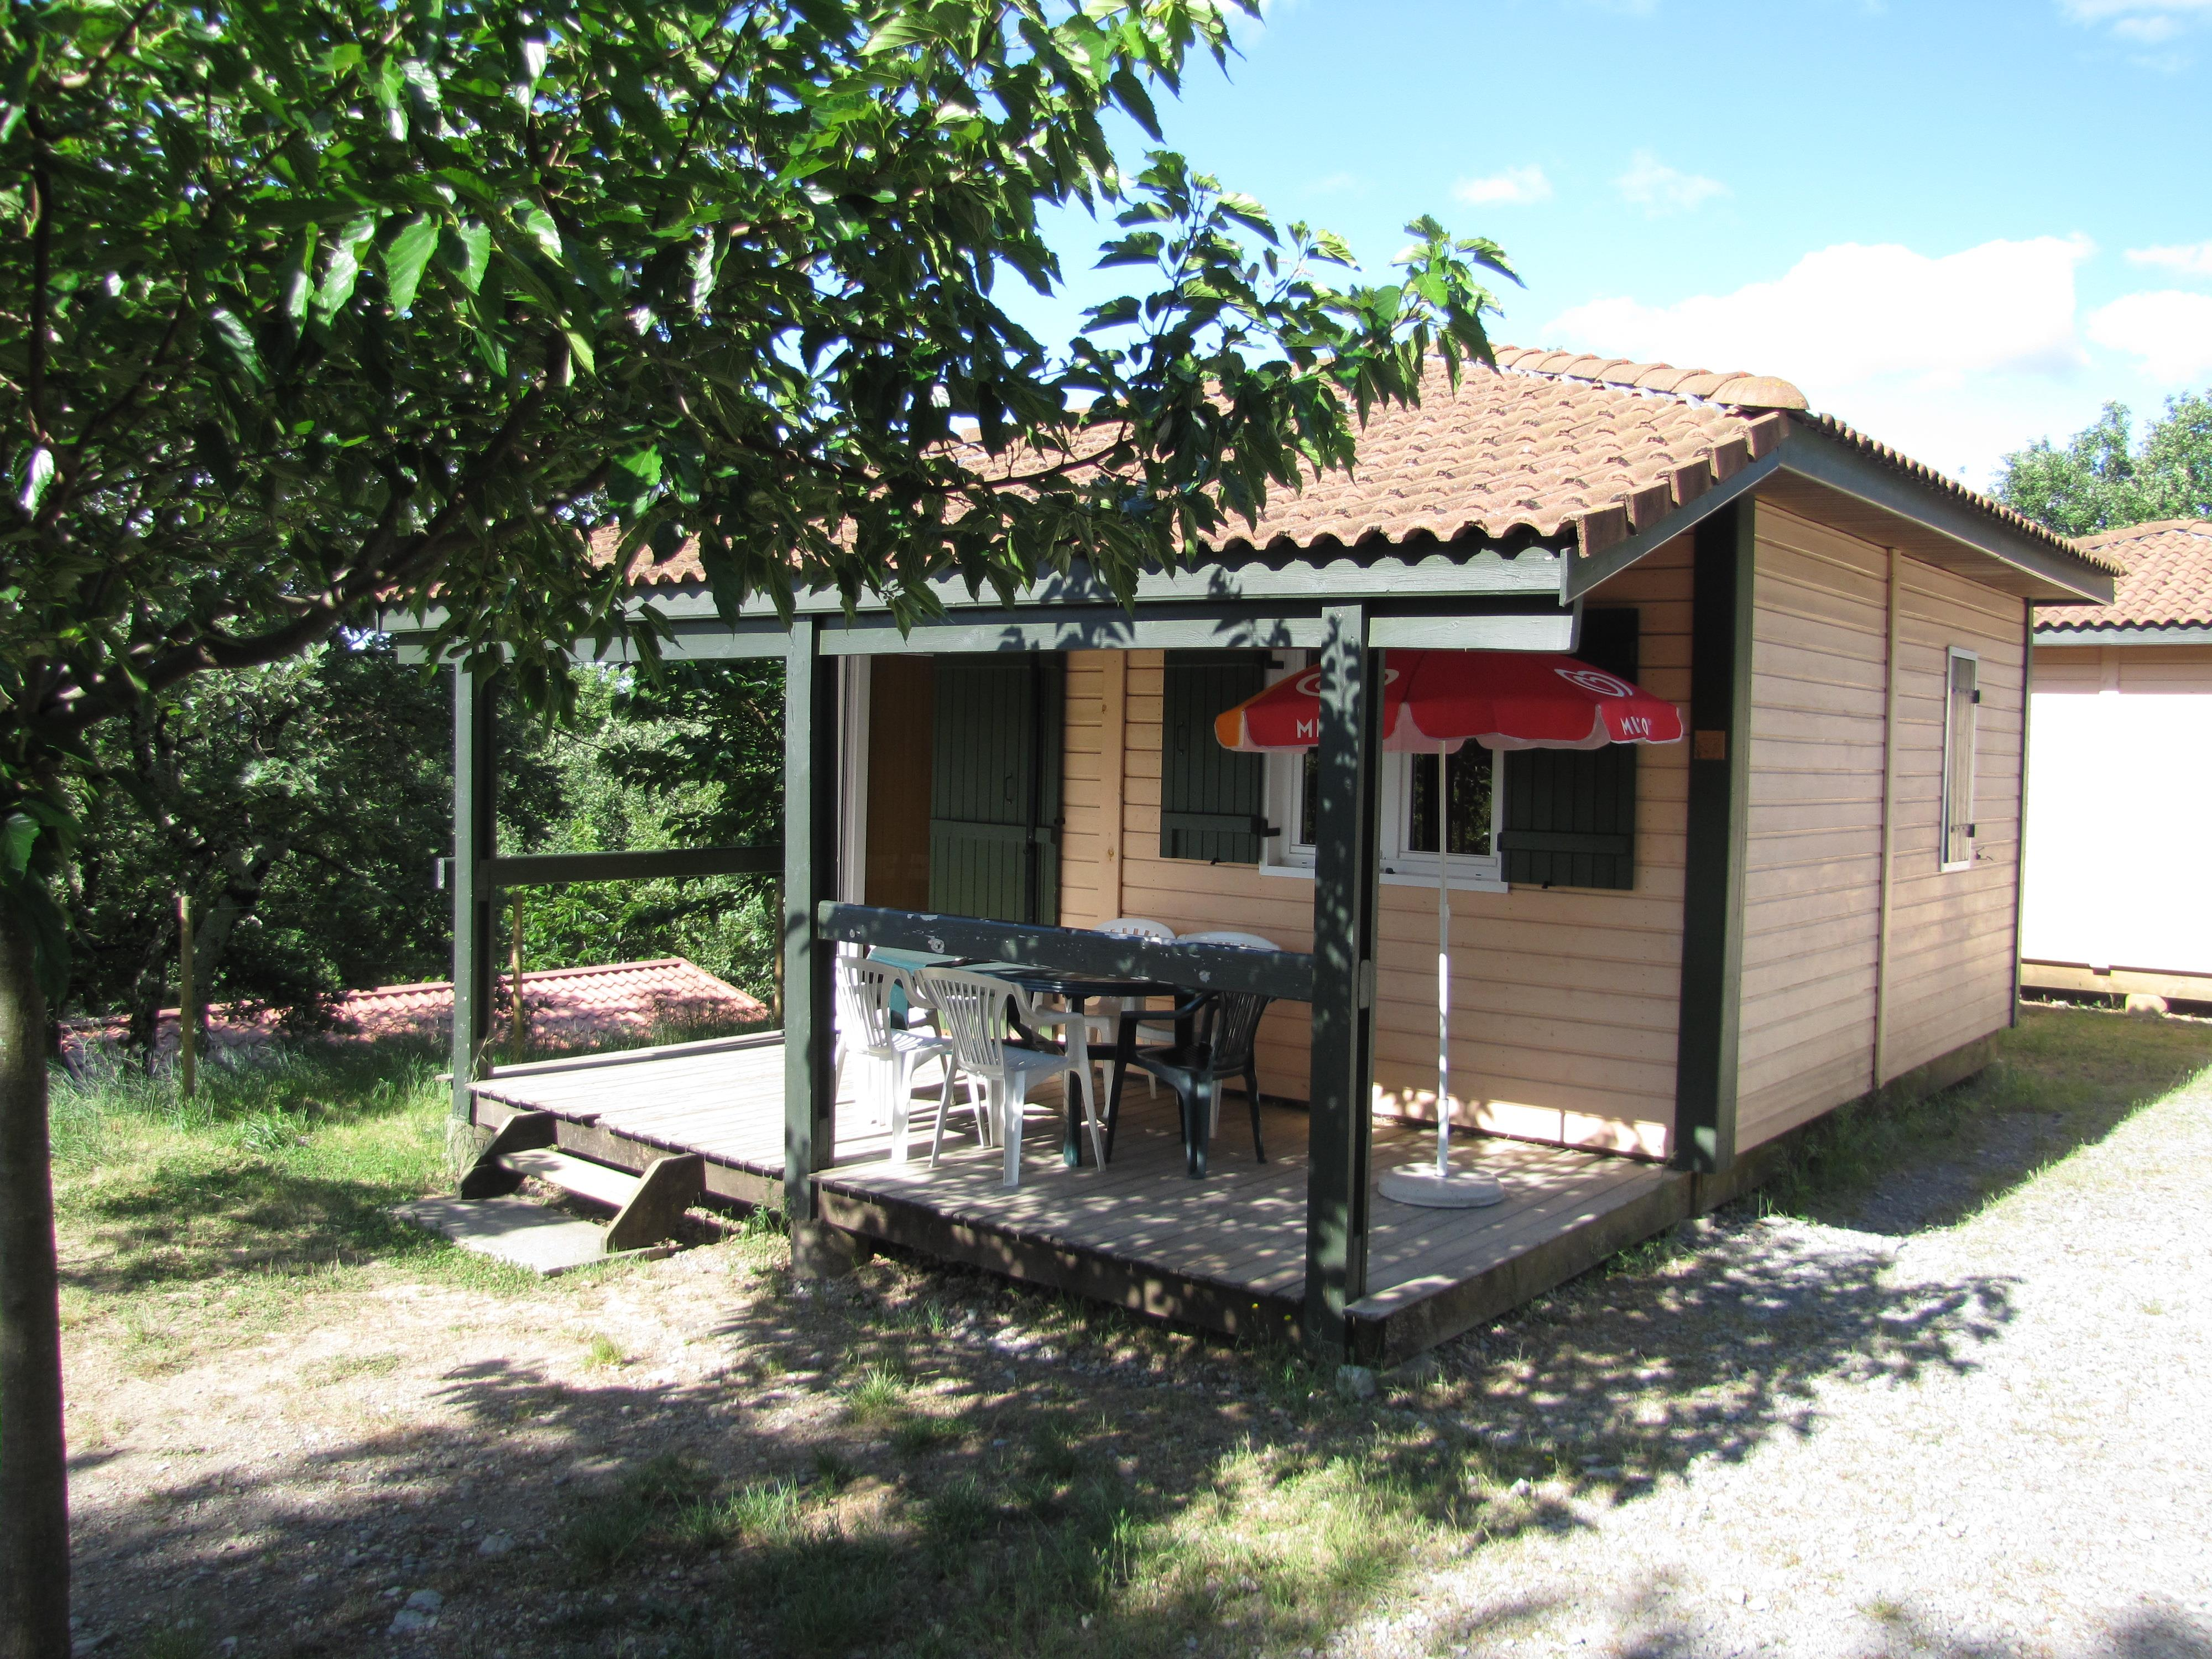 Location - Chalet Eden 35M², 2 Chambres. - Camping Les Chênes Verts